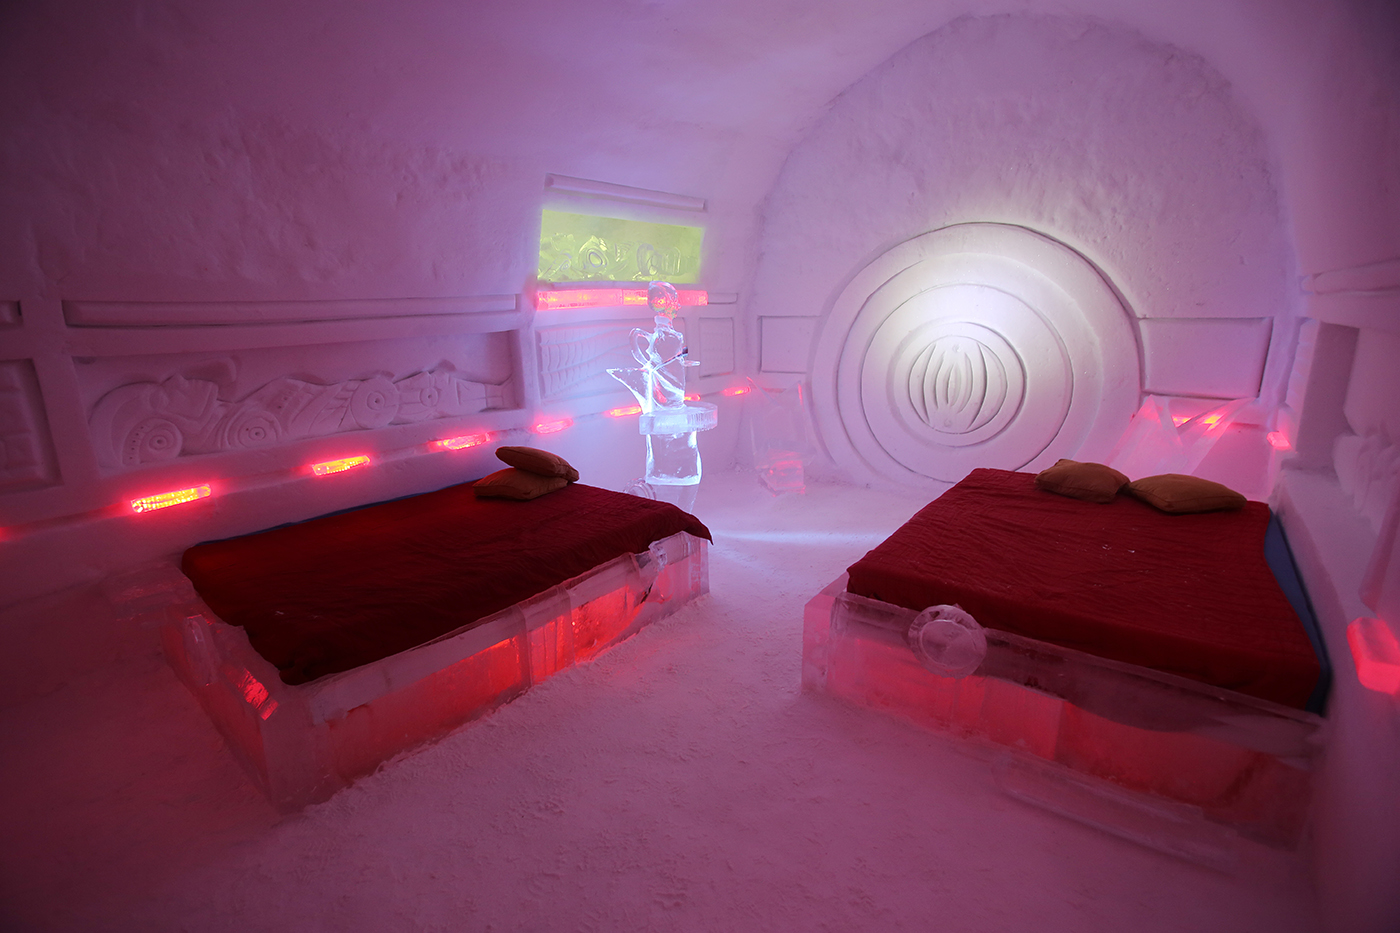 The Hôtel de Glace is a 10-minute drive from downtown Québec City and has 44 rooms and suites. It is open for tours and overnight stays until March 28. (Photo: FTO/Martin Griff)